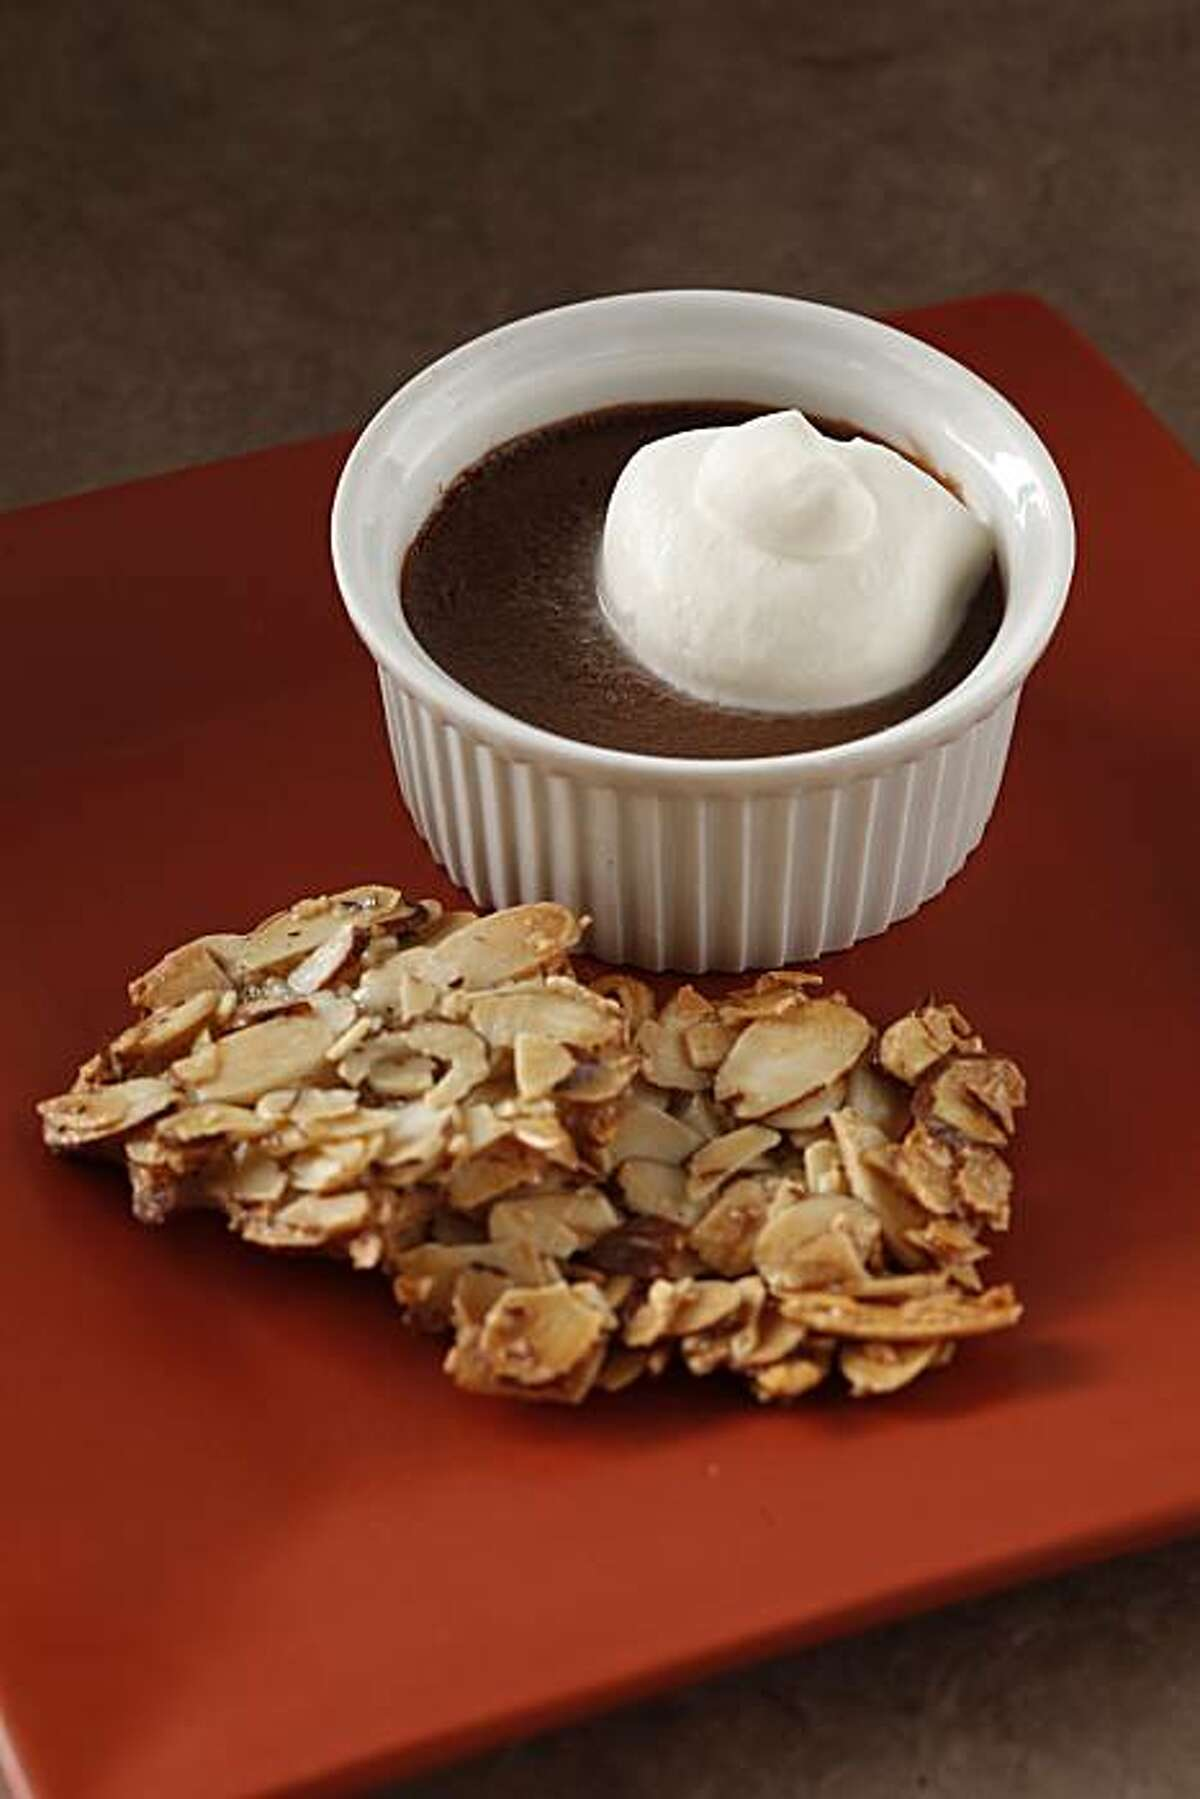 Chocolate pots de creme (Foreign Cinema) with Naomi's Almond Wafers as seen in San Francisco, California, on January 19, 2011. Food styled by Kelly Rae Hickman.